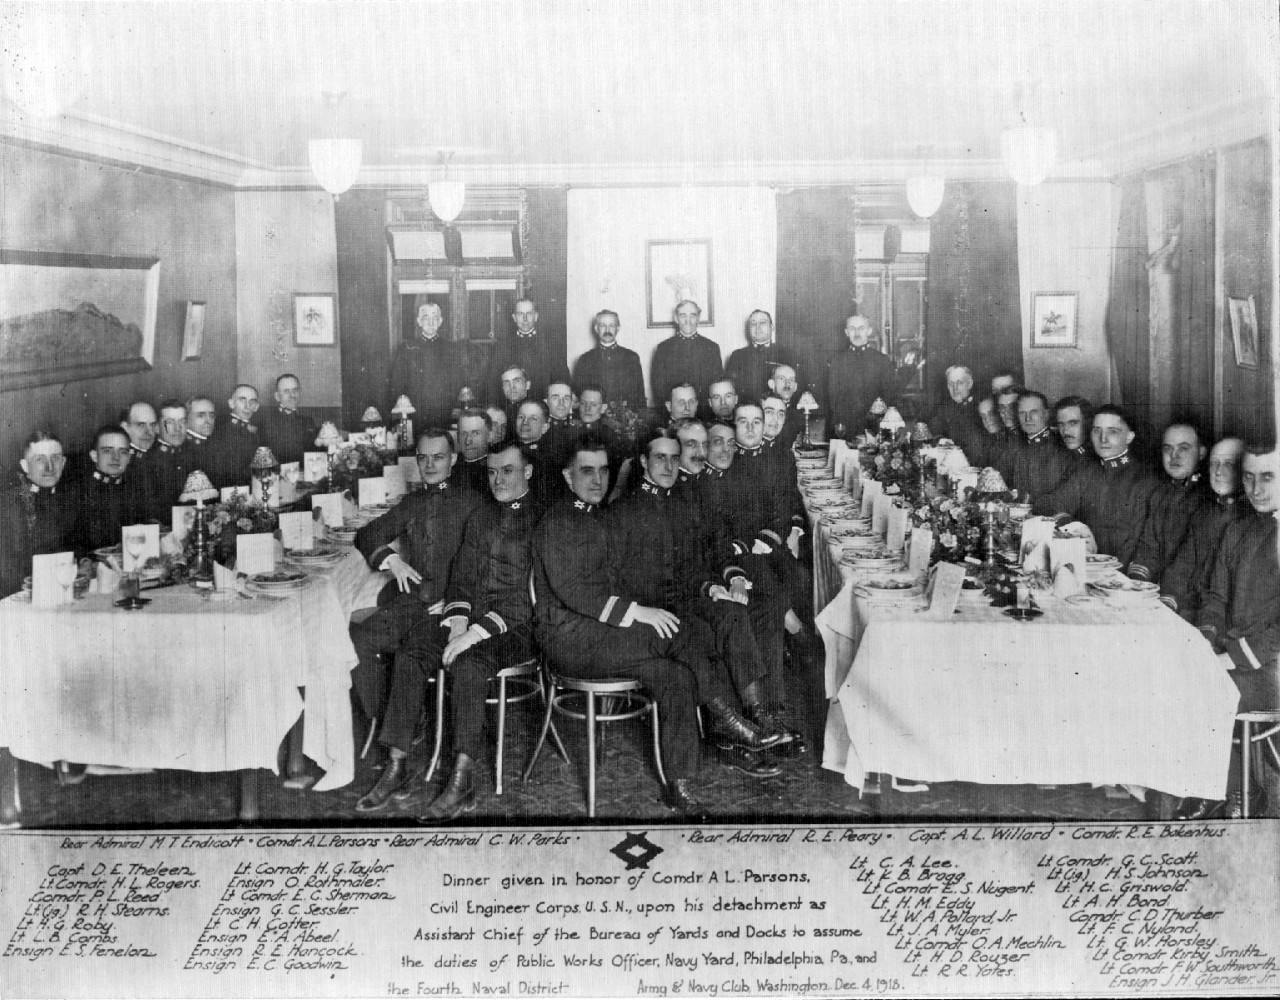 "Officer's Mess Night or ""Dining-in"" at the Army-Navy Club, Washington, D.C., December 4, 1913. The dinner was in honor of Commander Alan Parsons, CEC, USN, upon his detachment as Assistant Chief of the Bureau of Yards and Docks. Next, he assumed the duties as Public Works Offer at the Philadelphia Navy Yard."